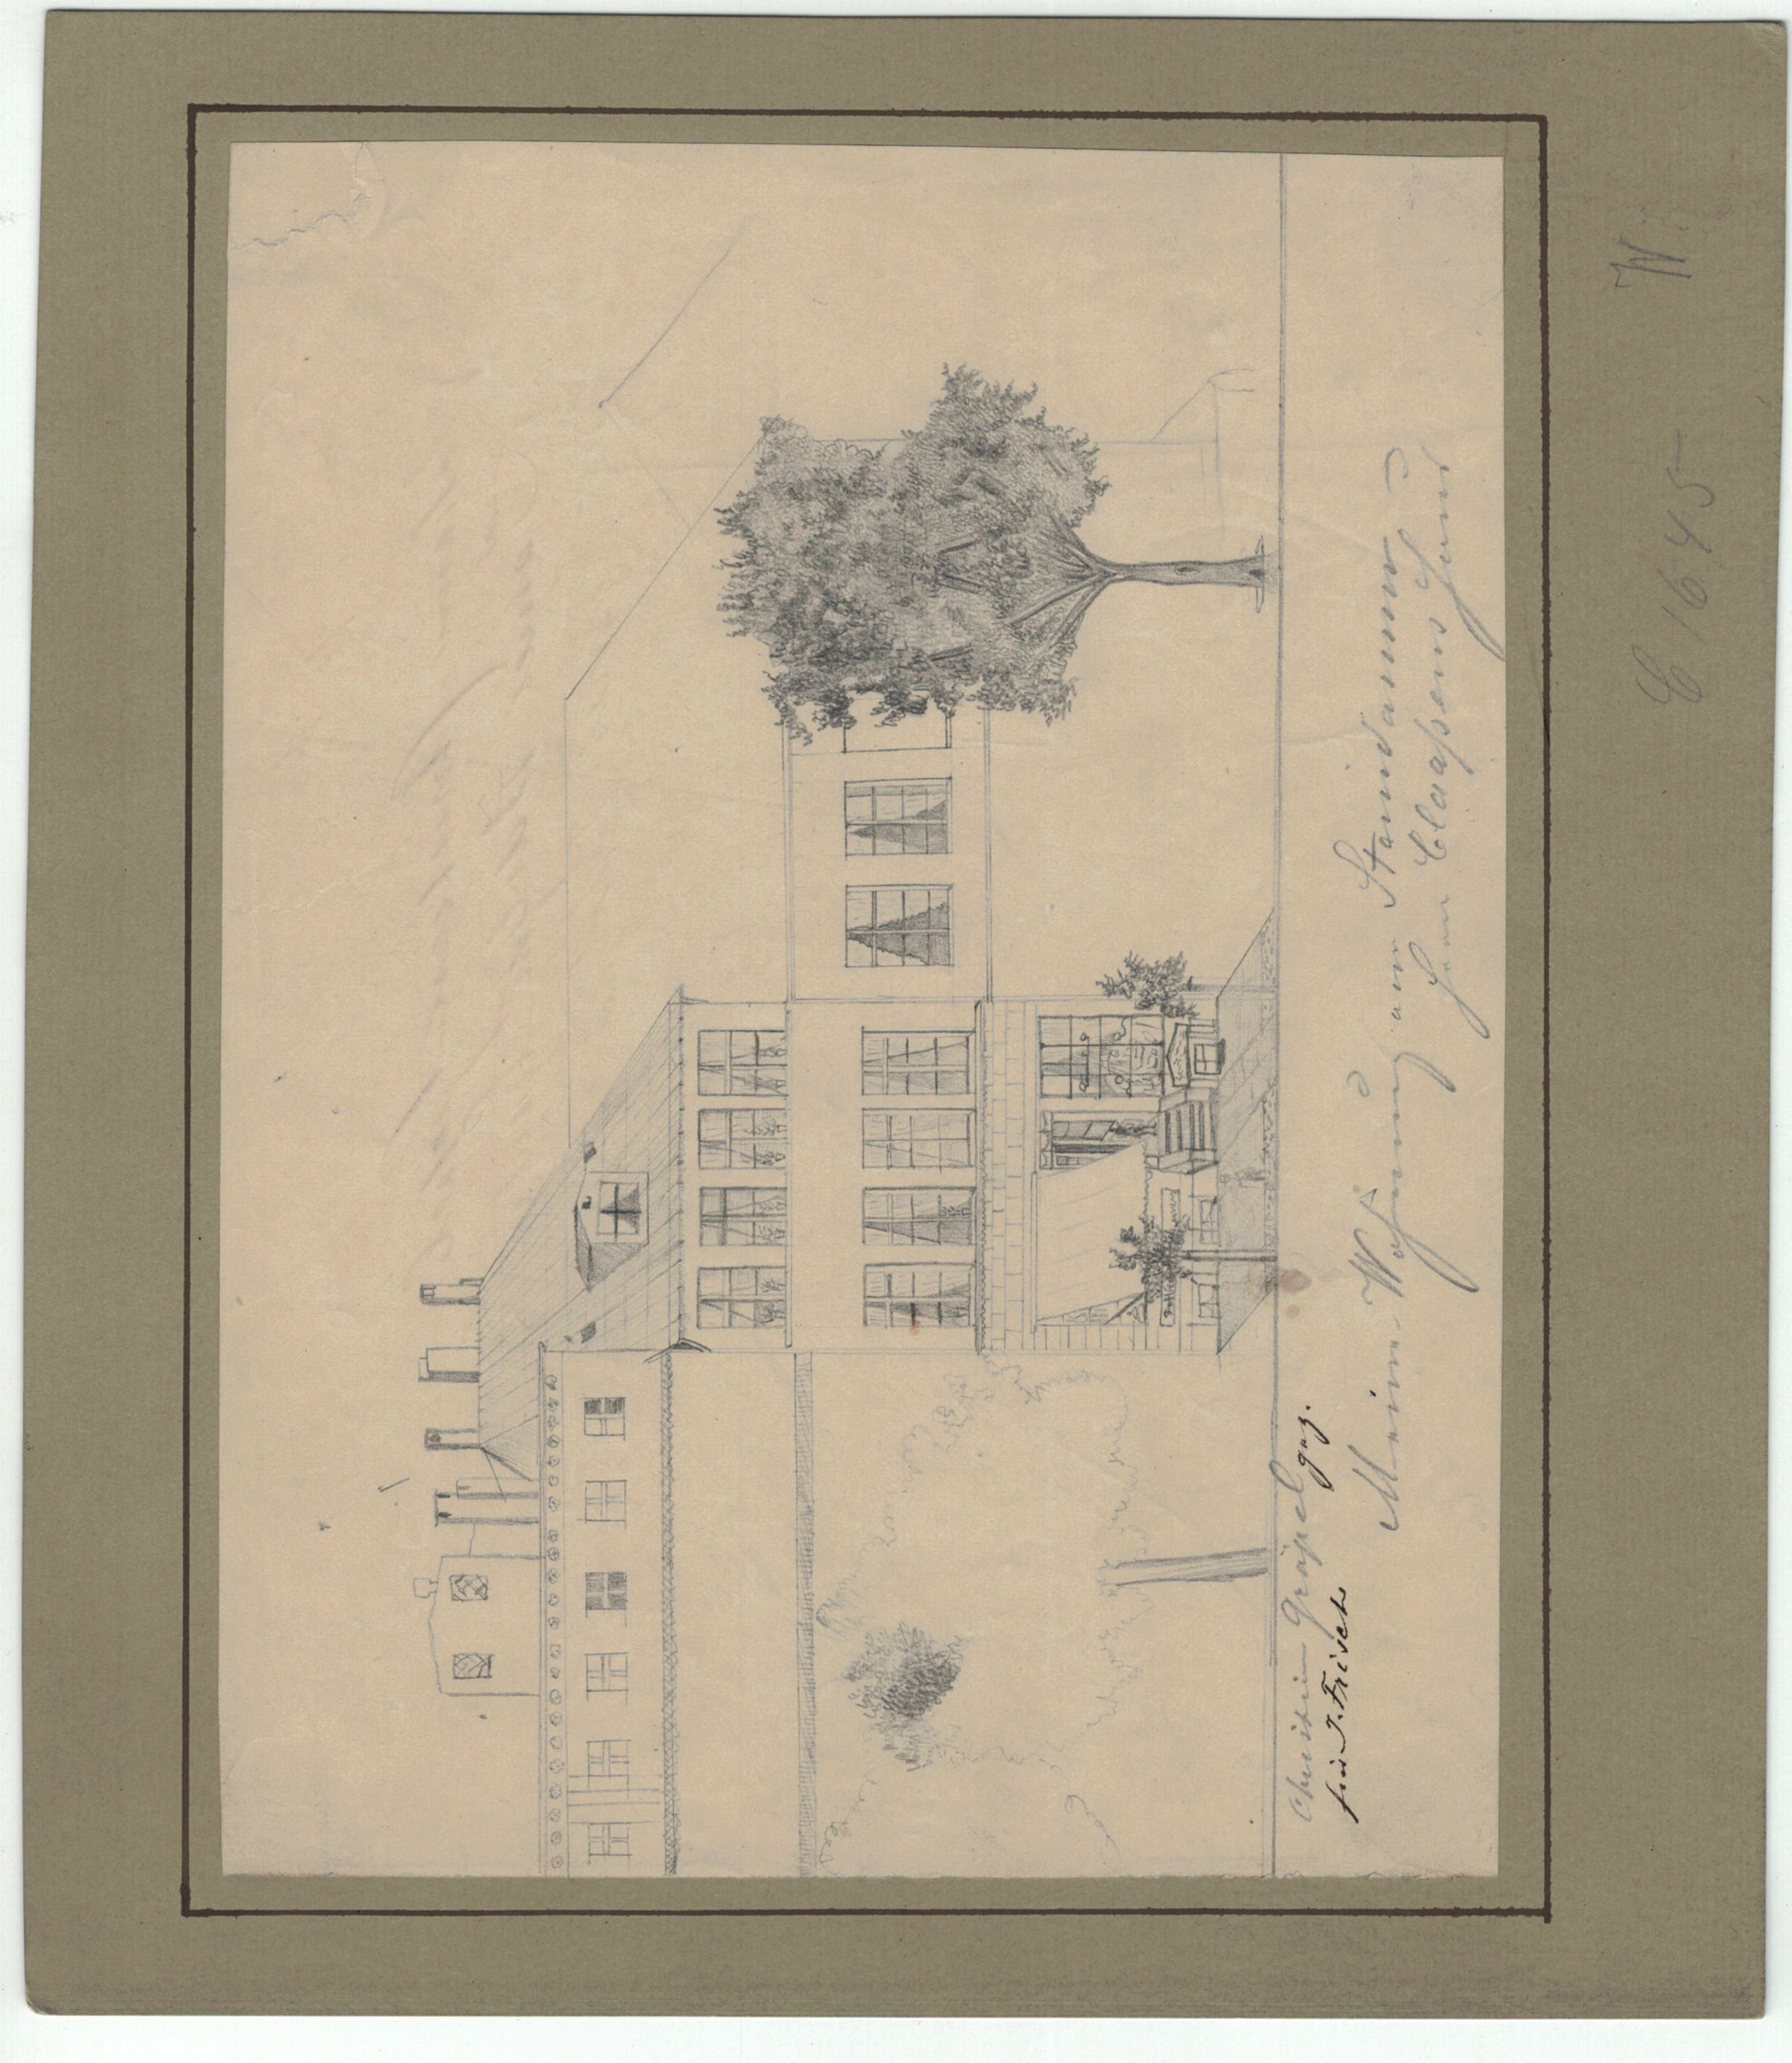 Lot 45 - Grp: 19th C. Prints watercolor and Sketches